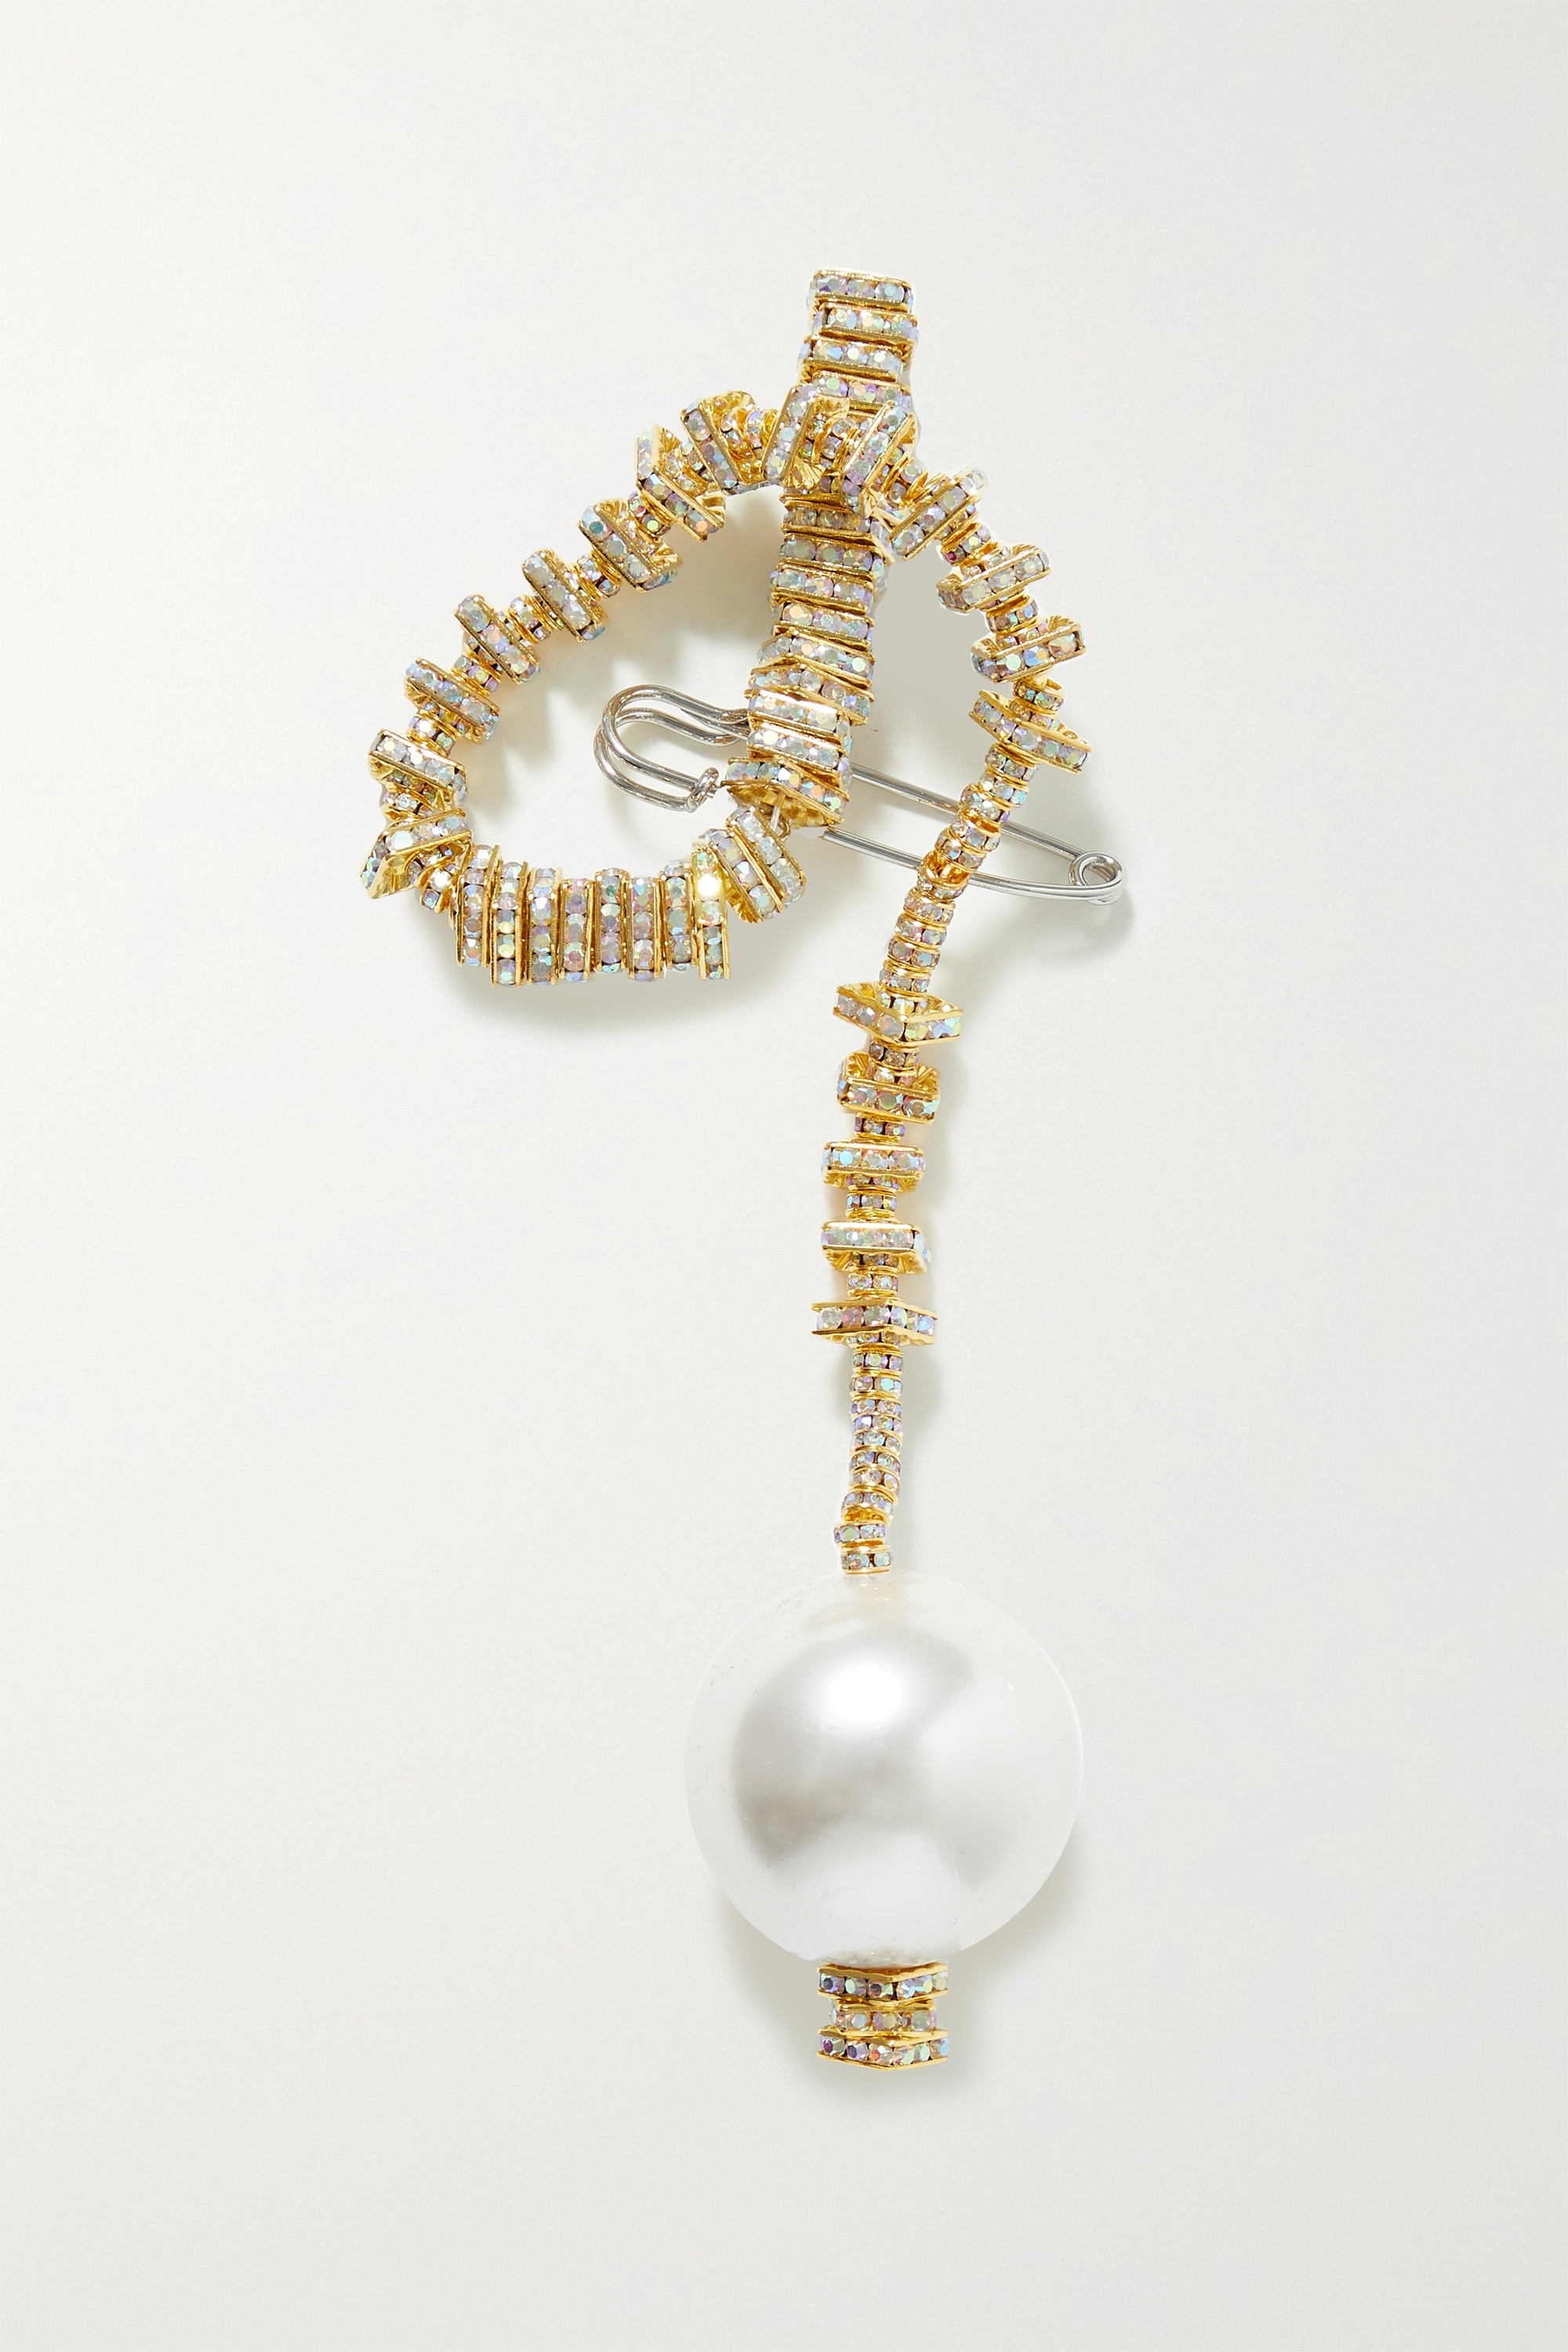 PEARL OCTOPUSS.Y Golden Snake gold-plated, crystal and faux pearl brooch